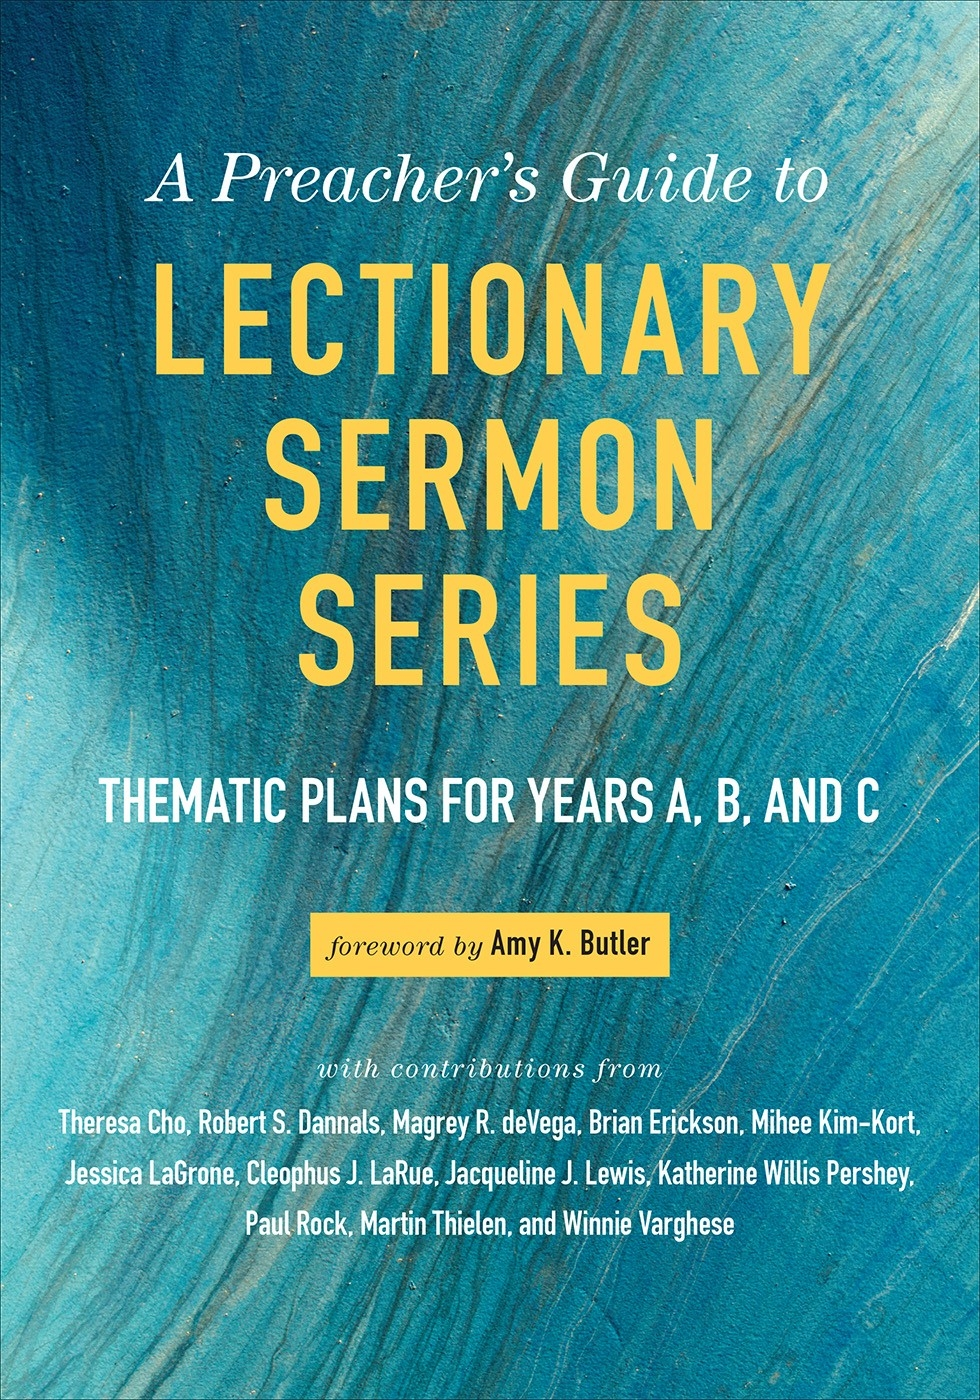 A Preacher's Guide To Lectionary Sermon Series Paper  United Methodist Church Lectionary Preaching 2020